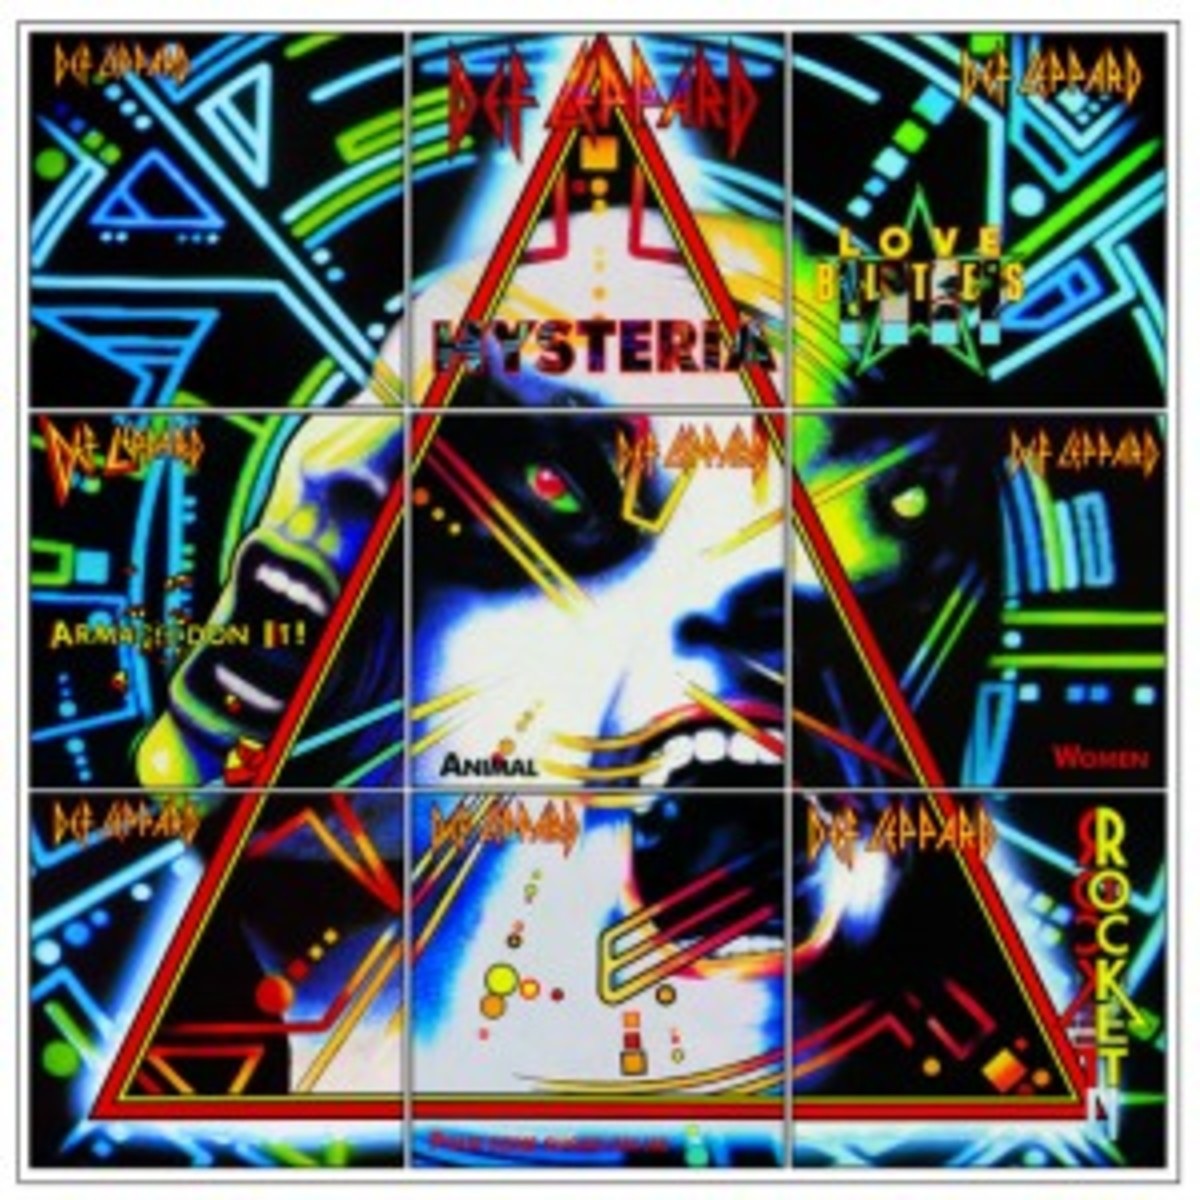 Def Leppard Hysteria picture sleeves